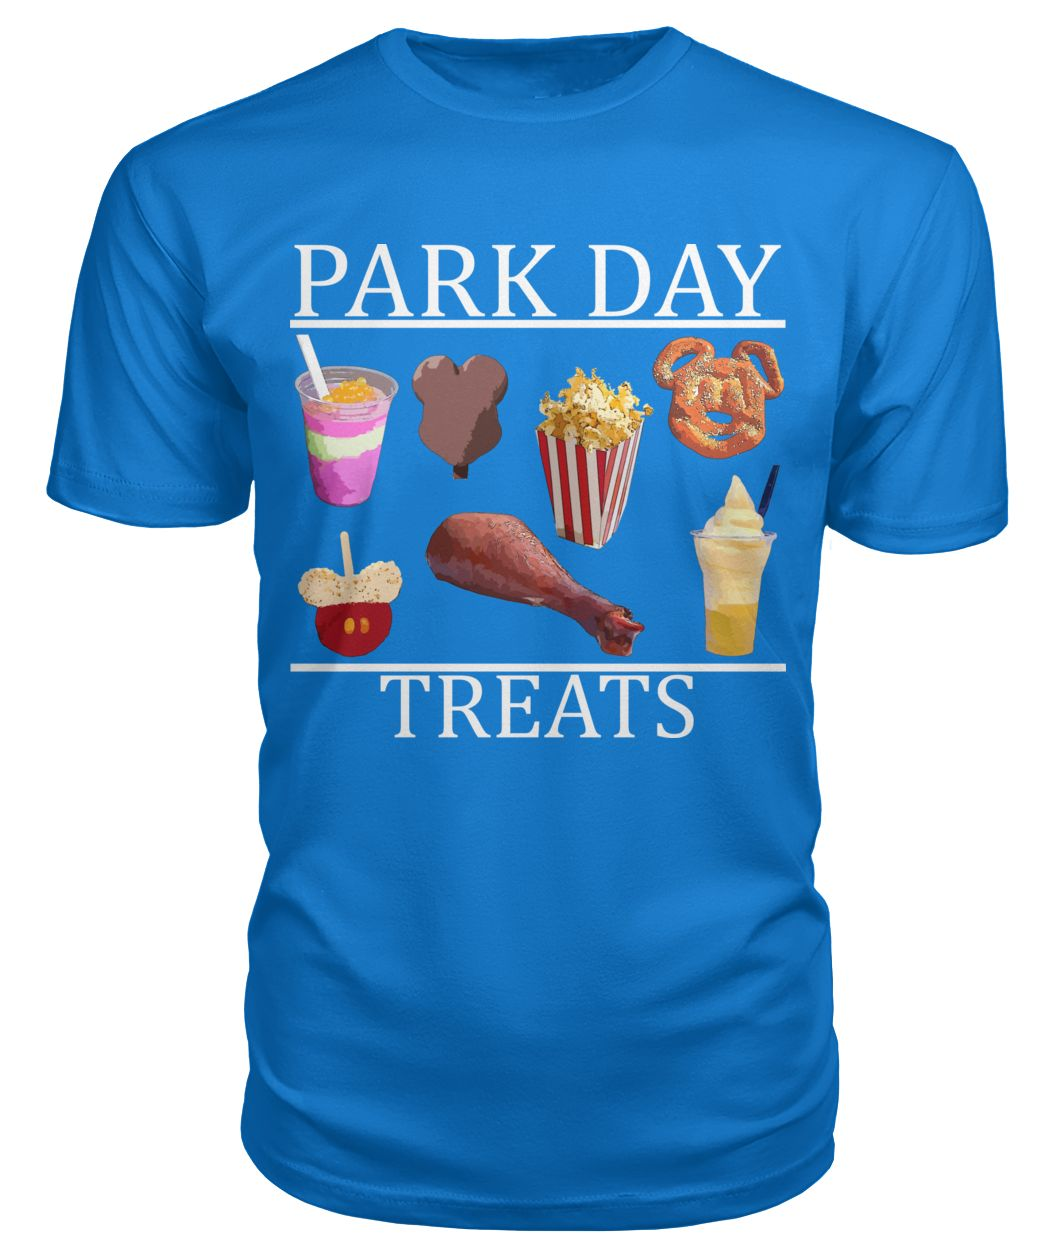 Park Day Treats Premium Unisex Tee